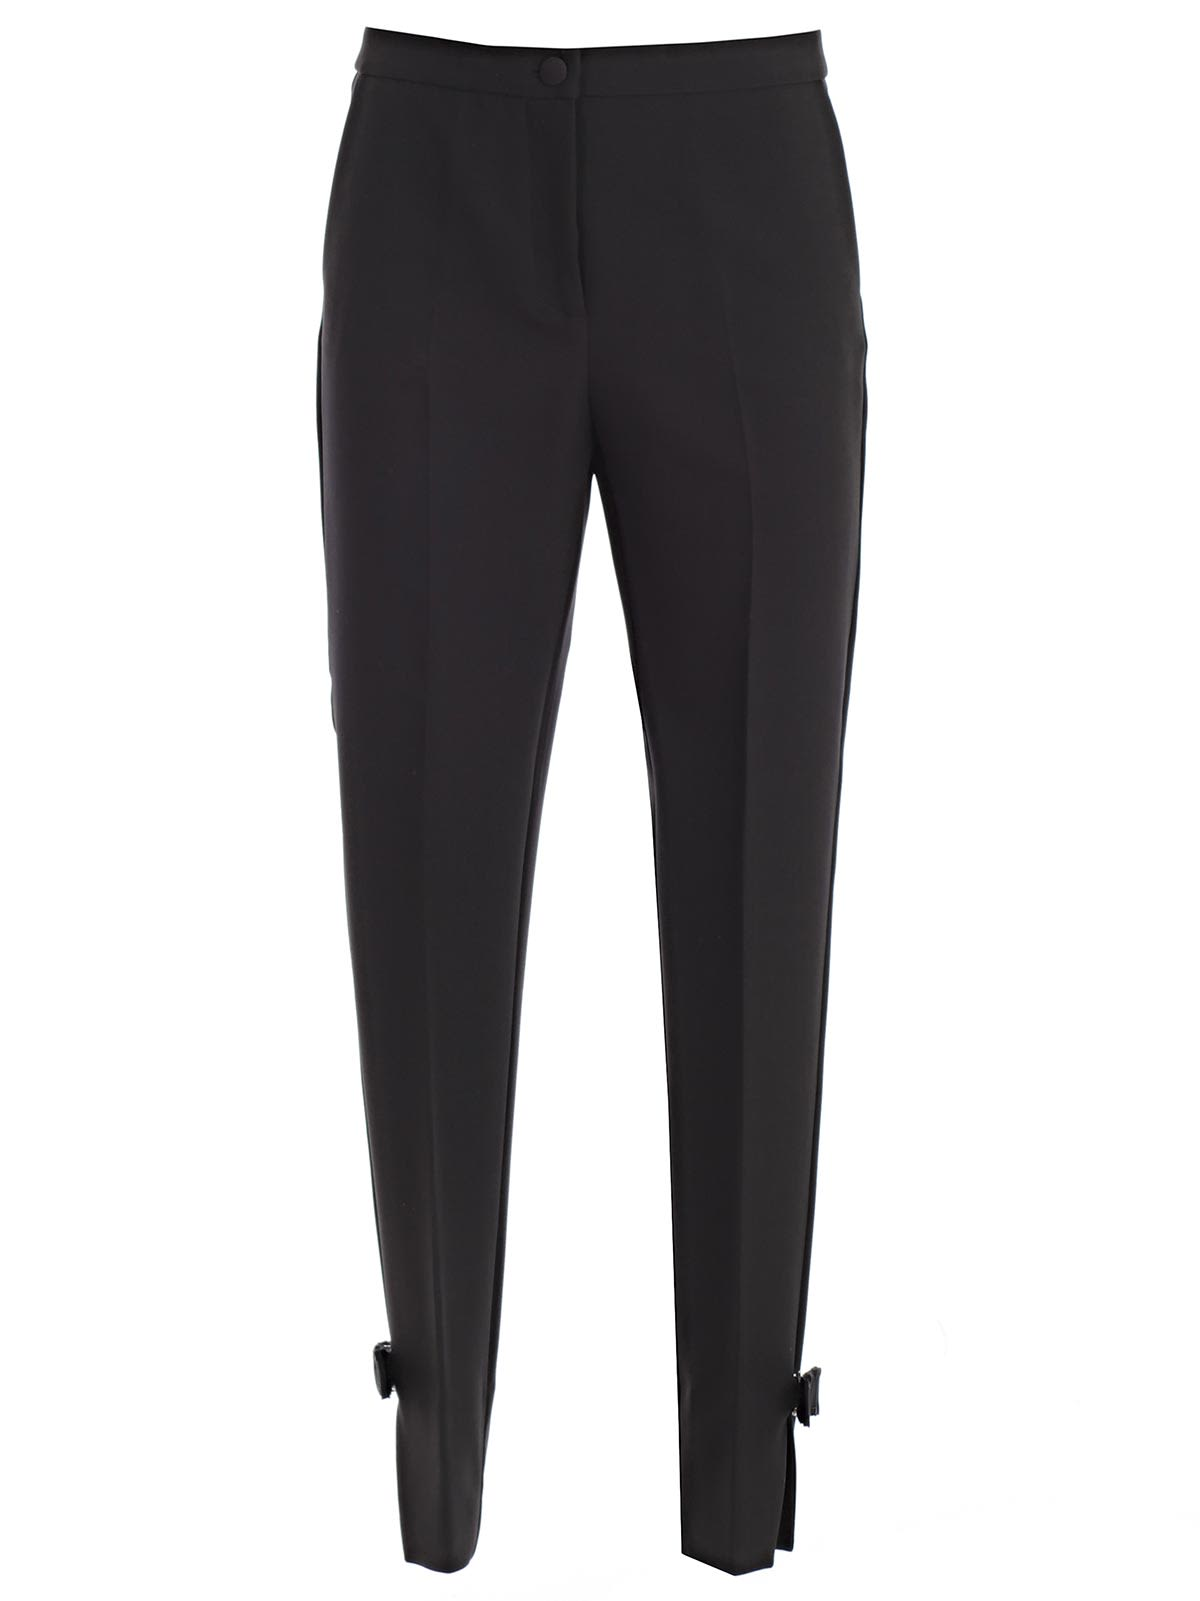 BLUMARINE TAPERED CROPPED TROUSERS